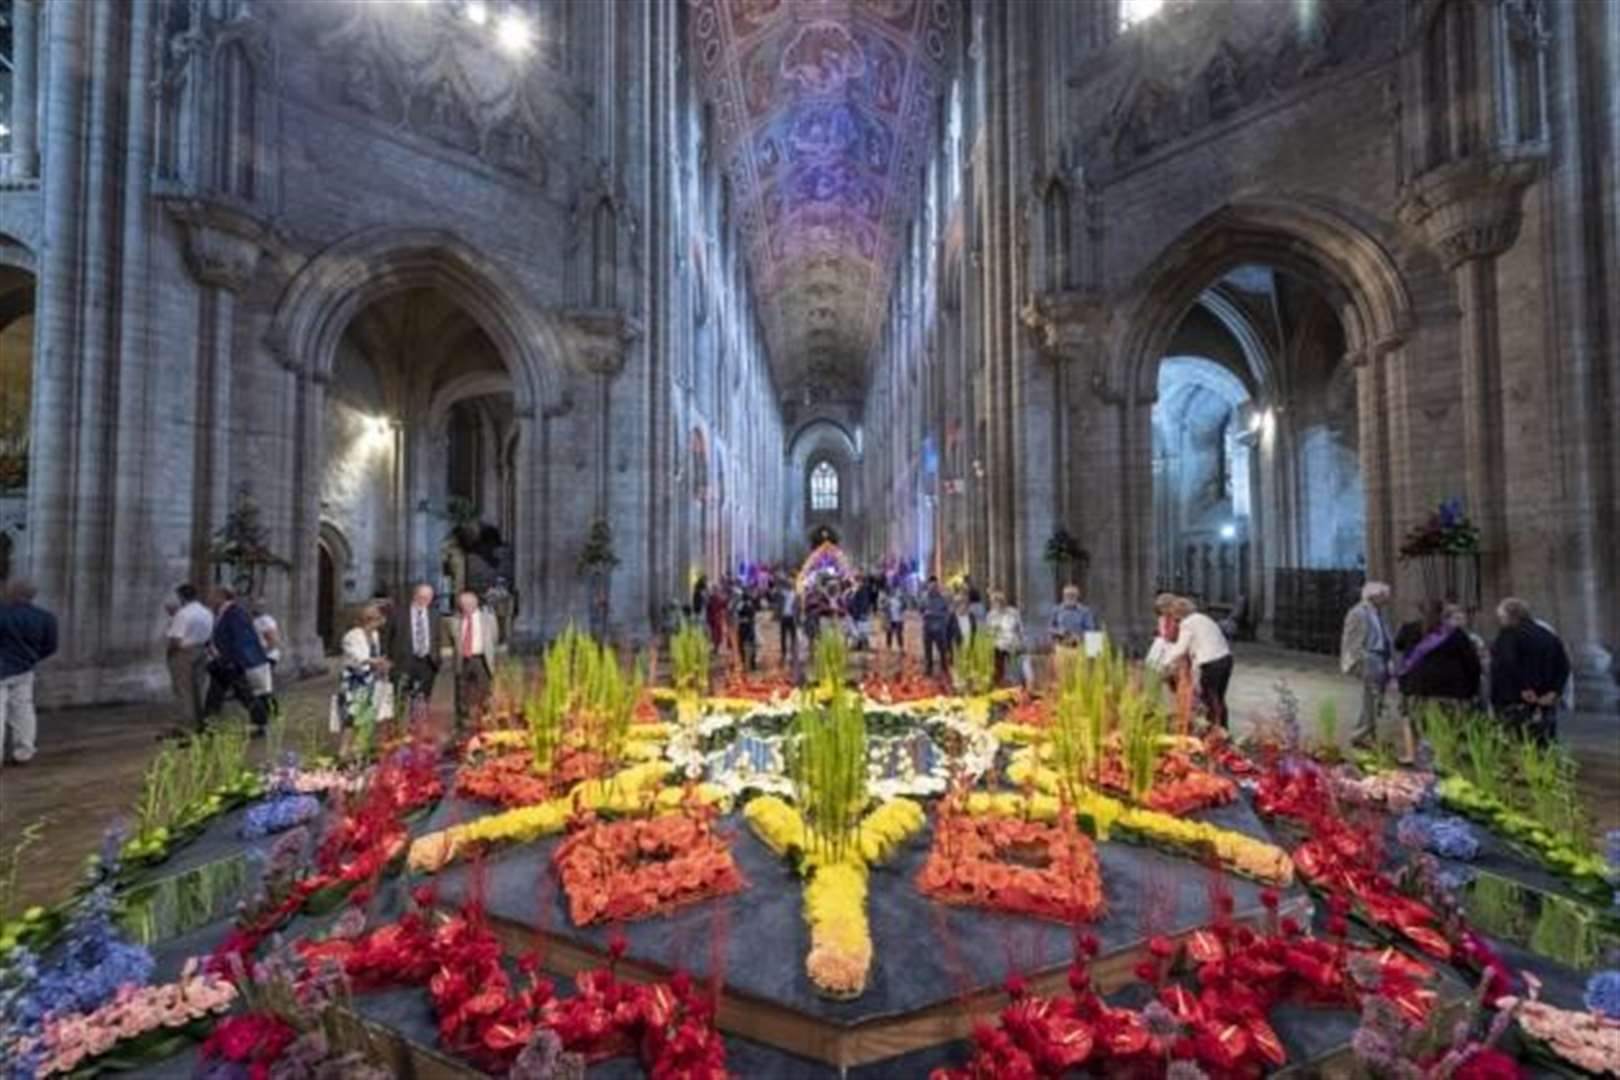 51 pictures of the stunning Ely Cathedral Flower Festival 2018